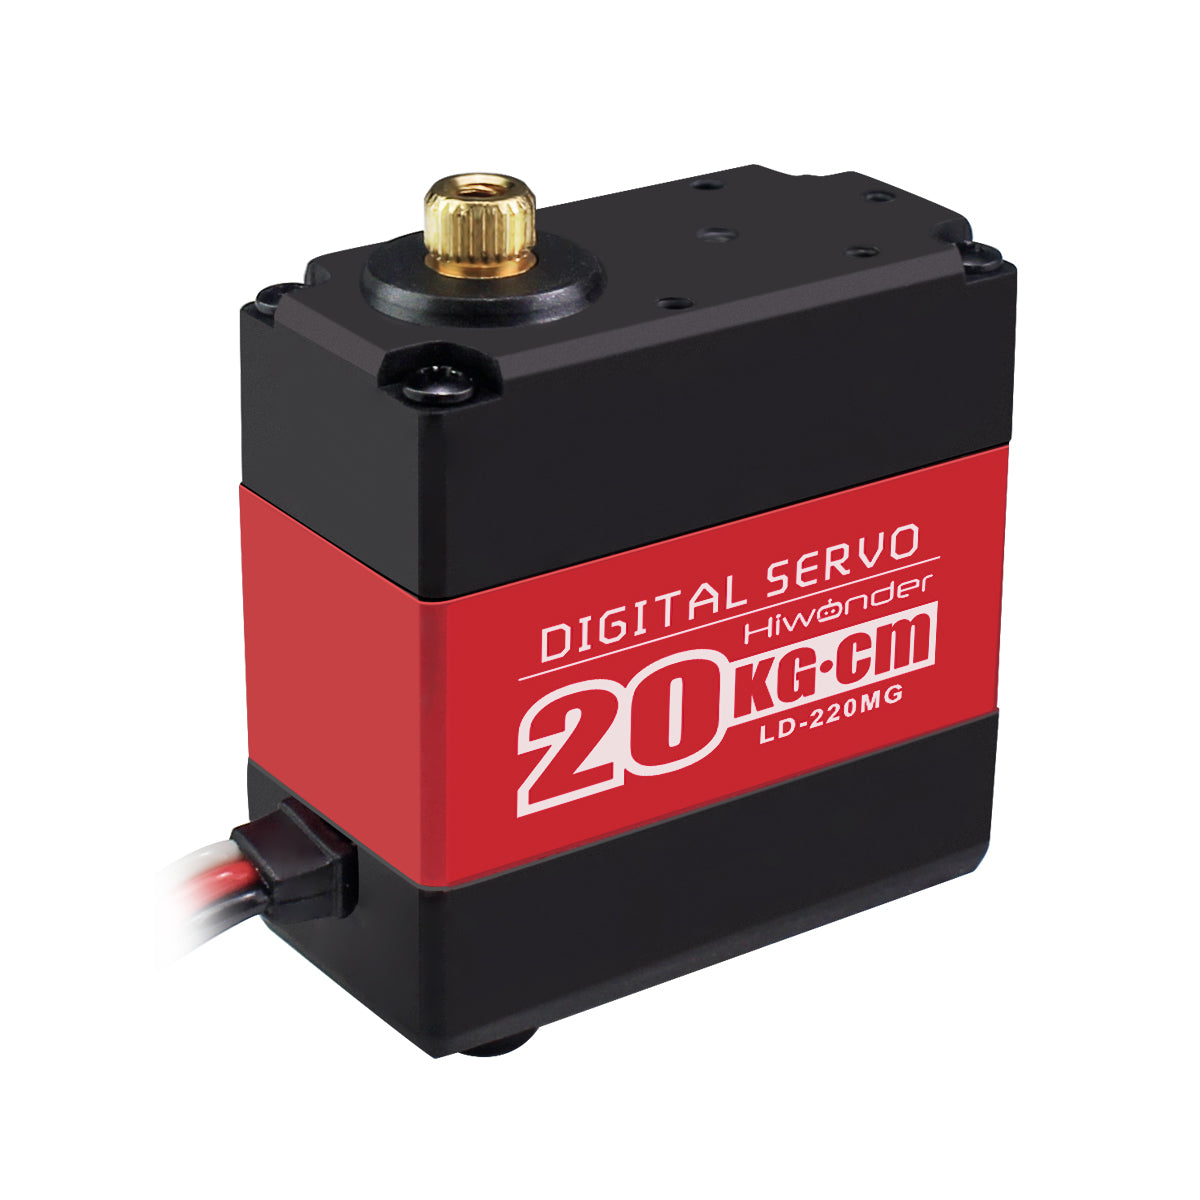 Hiwonder LD-220MG Full Metal Gear Digital Servo with Dual Ball Bearing,Metal Servo Horn, Metal Bracket for Robot